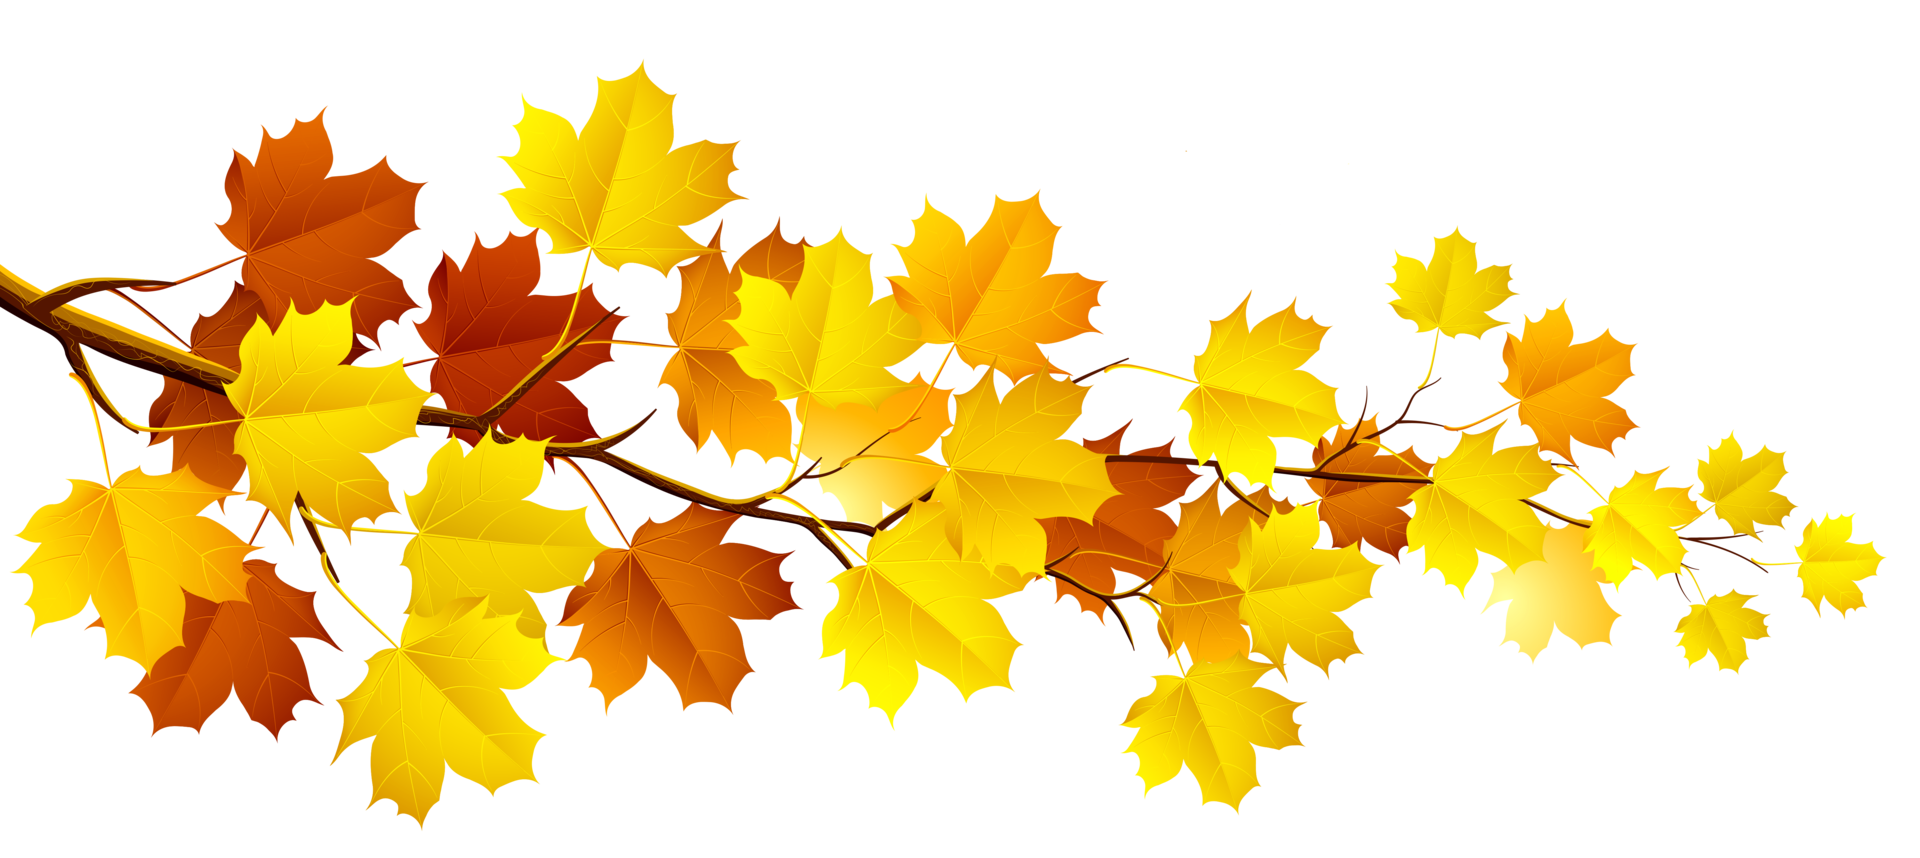 Fall leaves on a branch